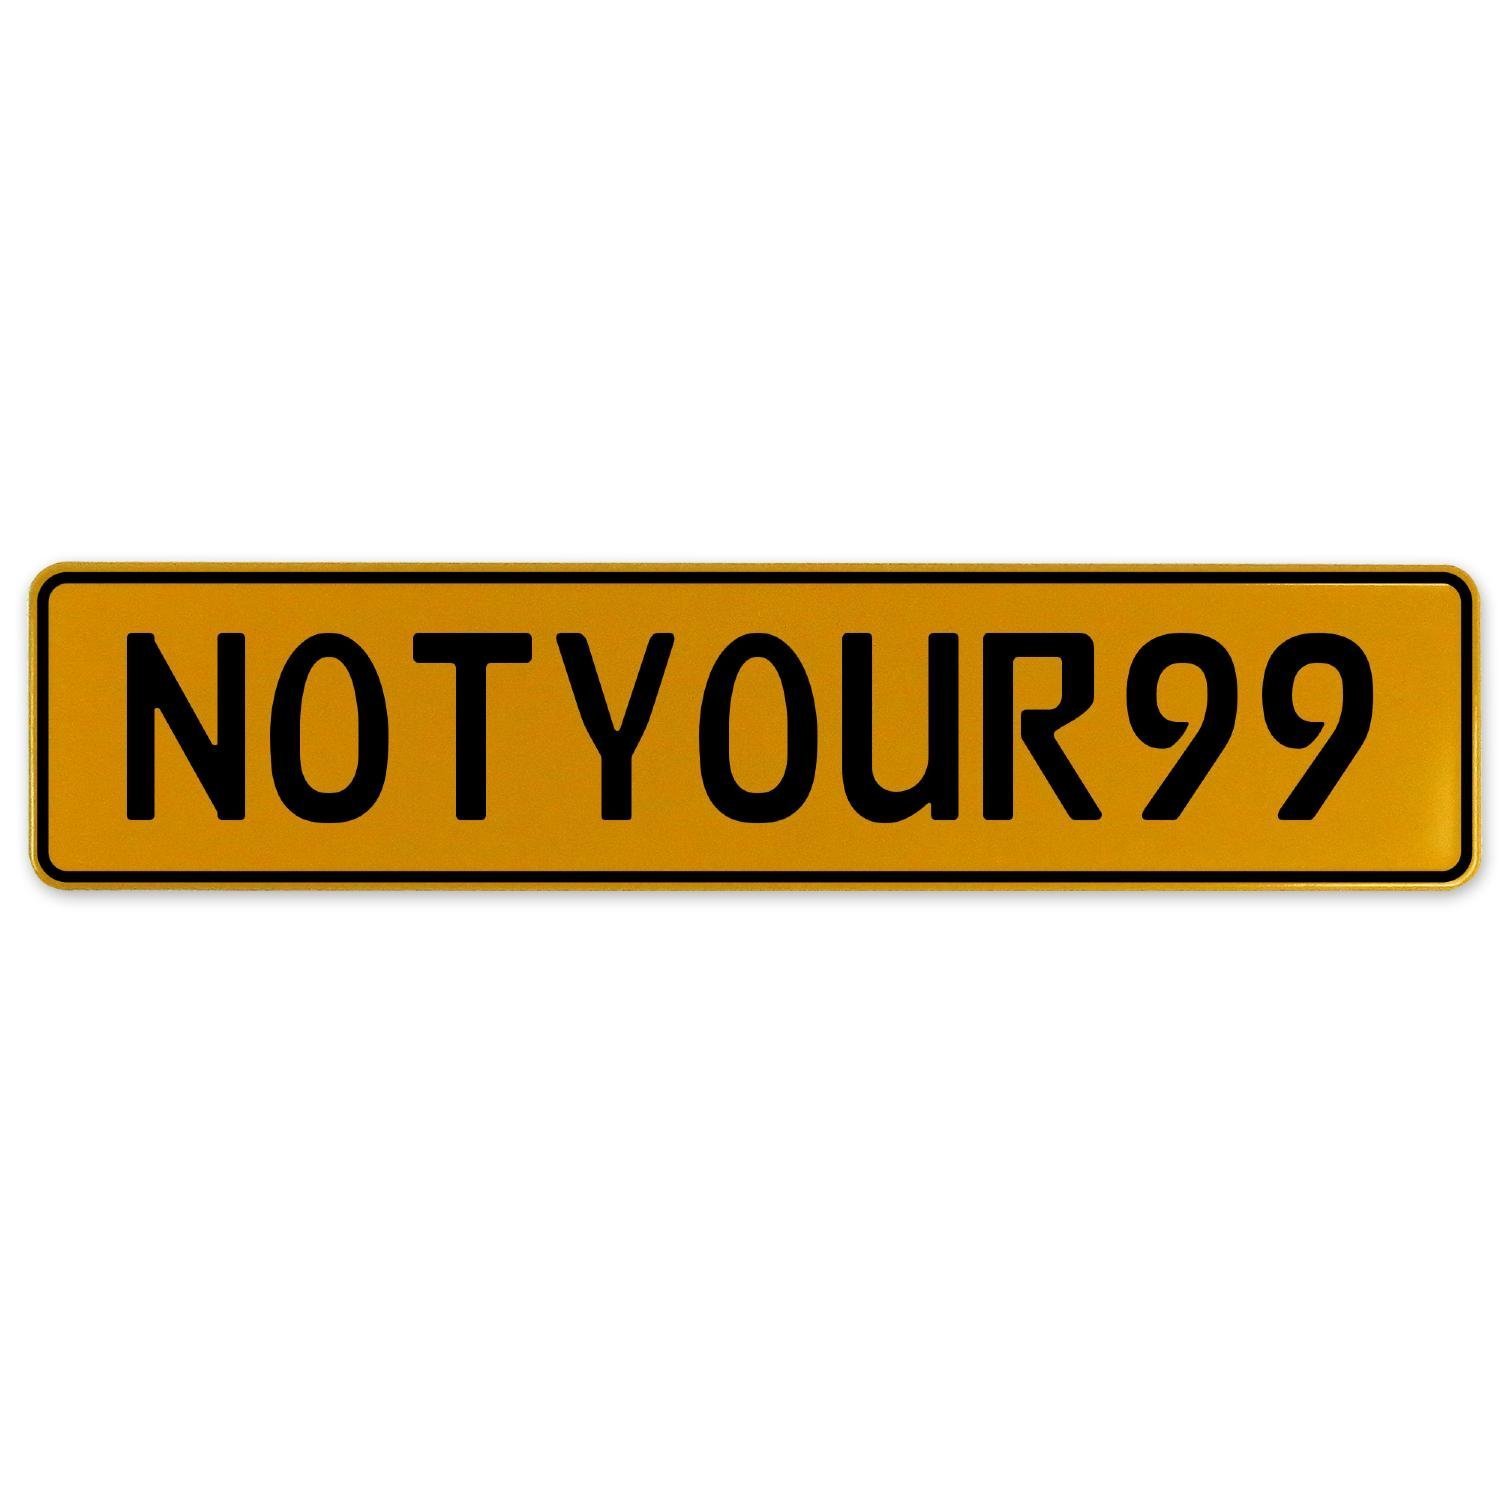 Vintage Parts 560537 NOTYOUR99 Yellow Stamped Aluminum European Plate